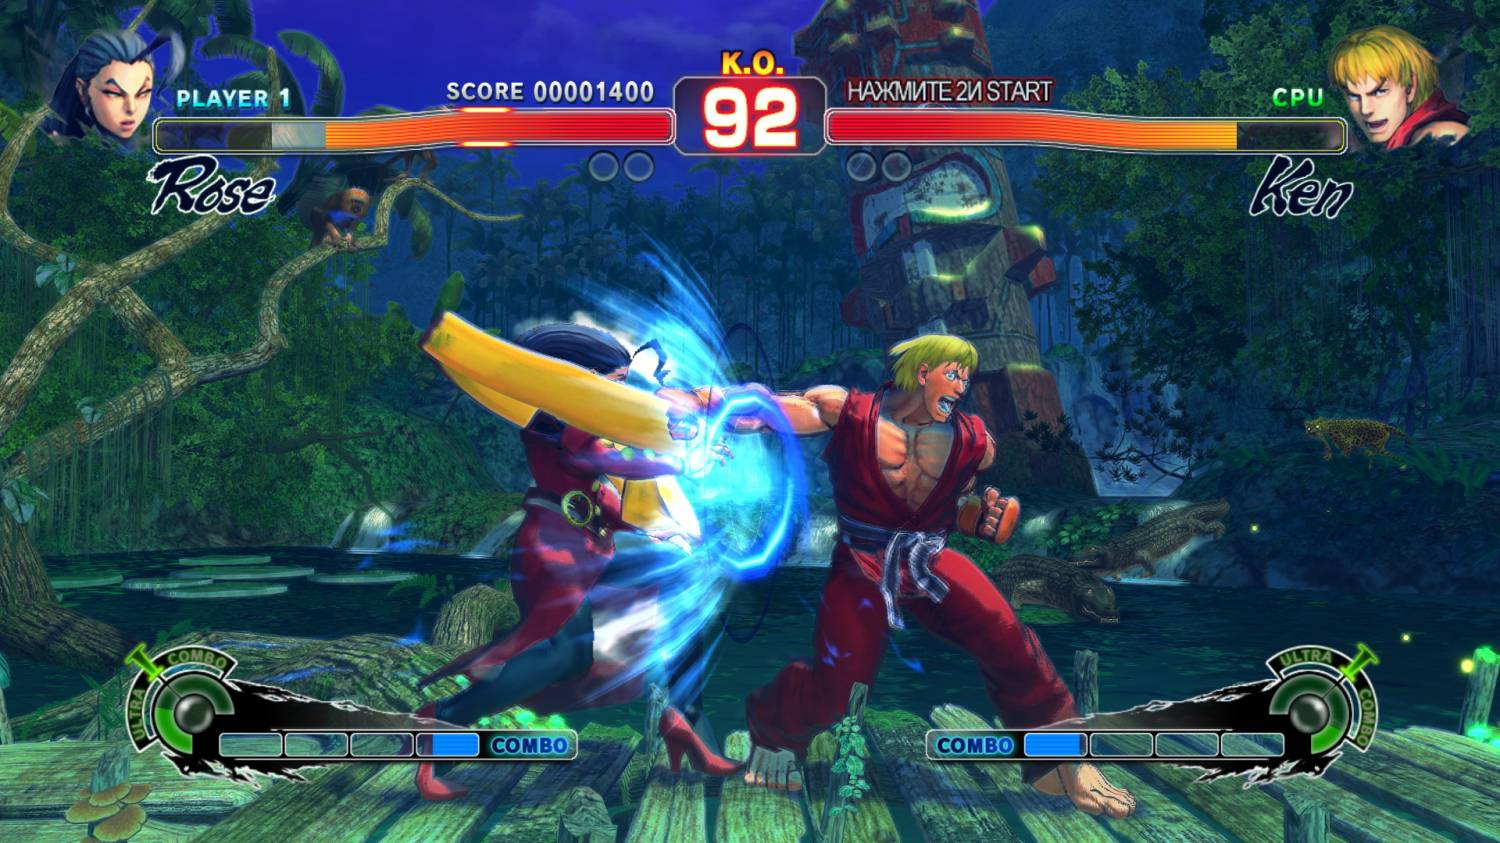 Screenshot for the game Street Fighter 4: Arcade Edition (2011) RePack from R.G. Mechanics